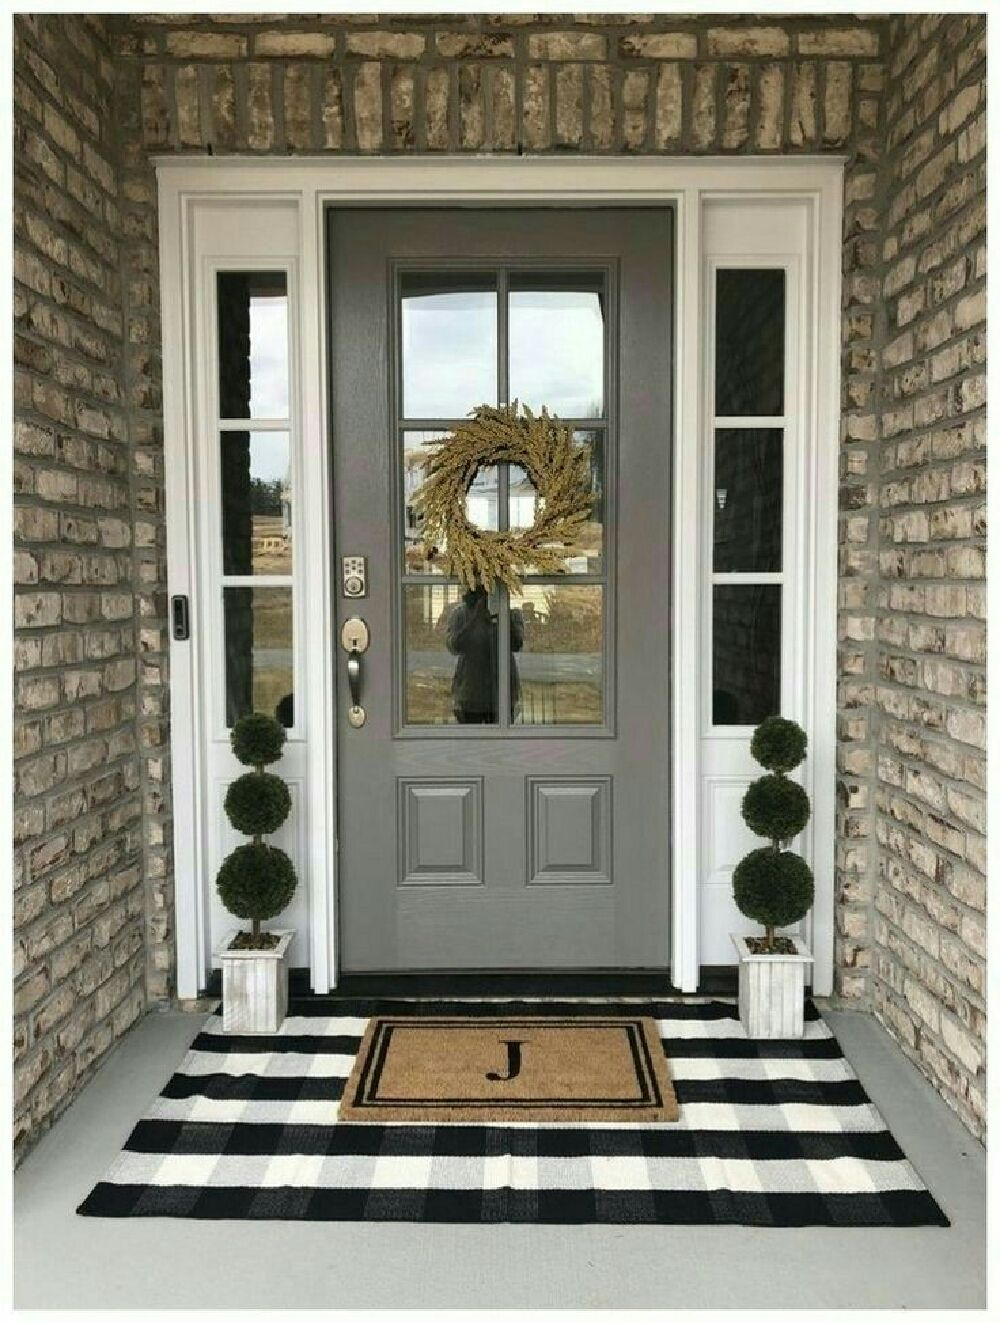 25 best wall design ideas for exterior front porch on gorgeous modern farmhouse entryway decorating ideas produce a right one id=88333